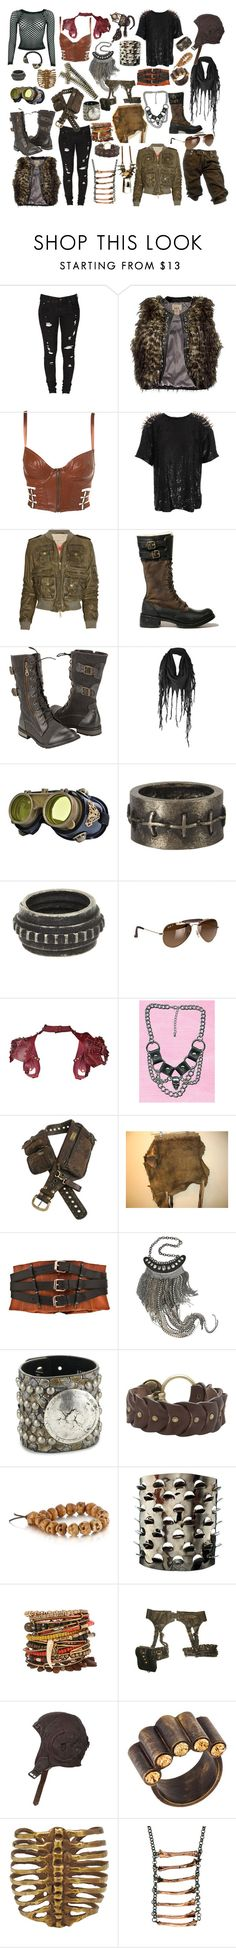 """Post Apocalyptic Couple"" by n0face ❤ liked on Polyvore featuring CC, Levi's, BKE, Ashish, Burberry, Timberland, Firetrap, AllSaints, Ray-Ban and Úna Burke"